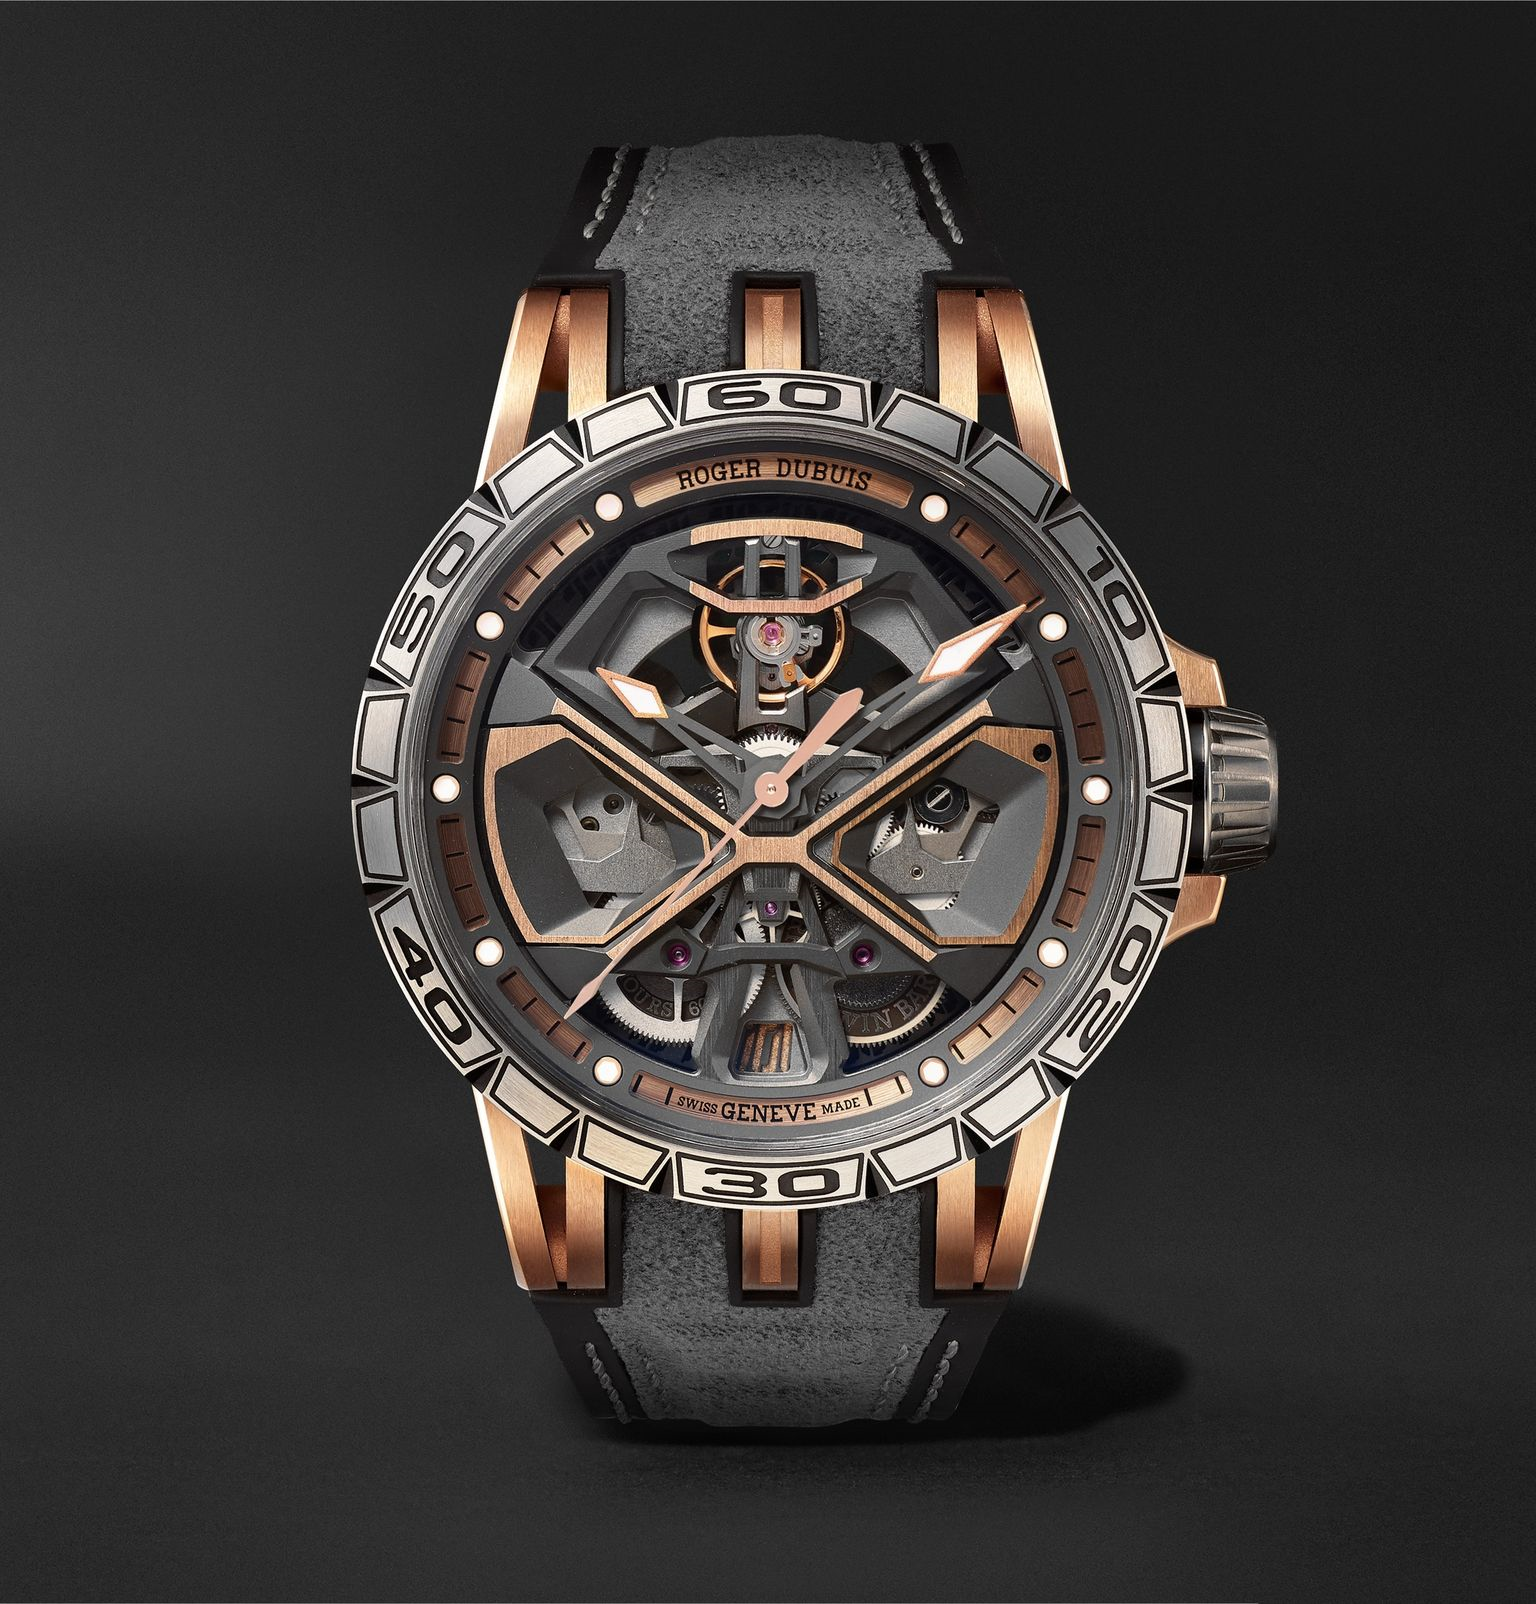 Roger Dubuis and Lamborghini New Timepiece – Roger Dubuis and Lamborghini New Timepiece